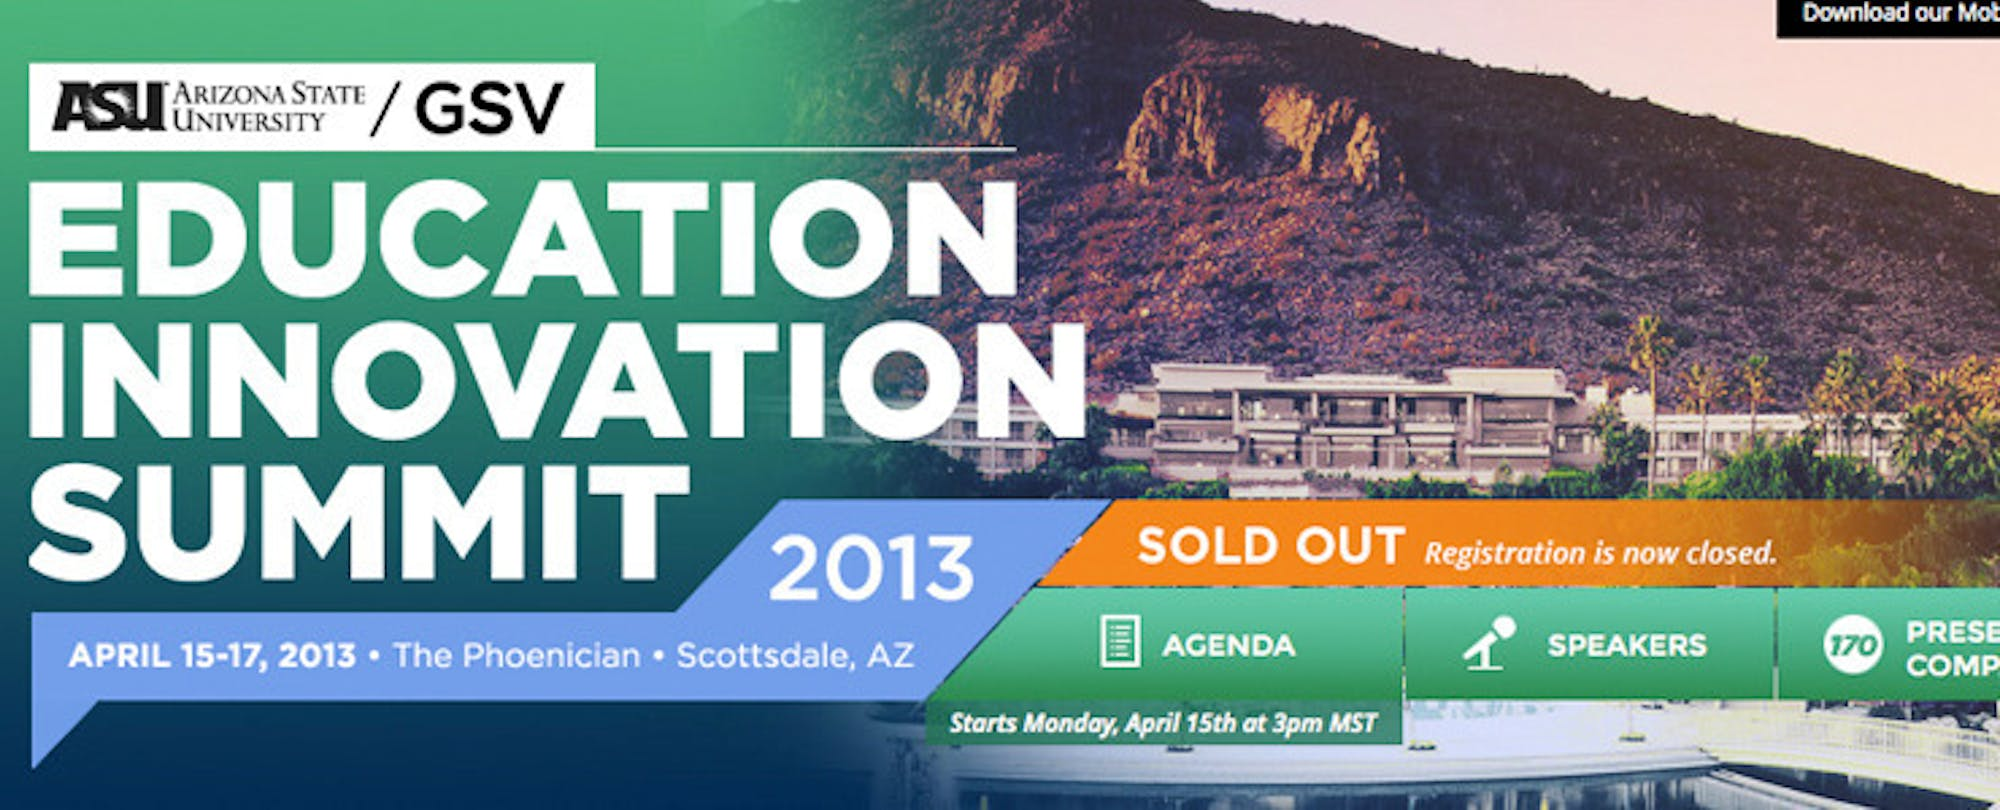 A Cheatsheet to the Education Innovation Summit